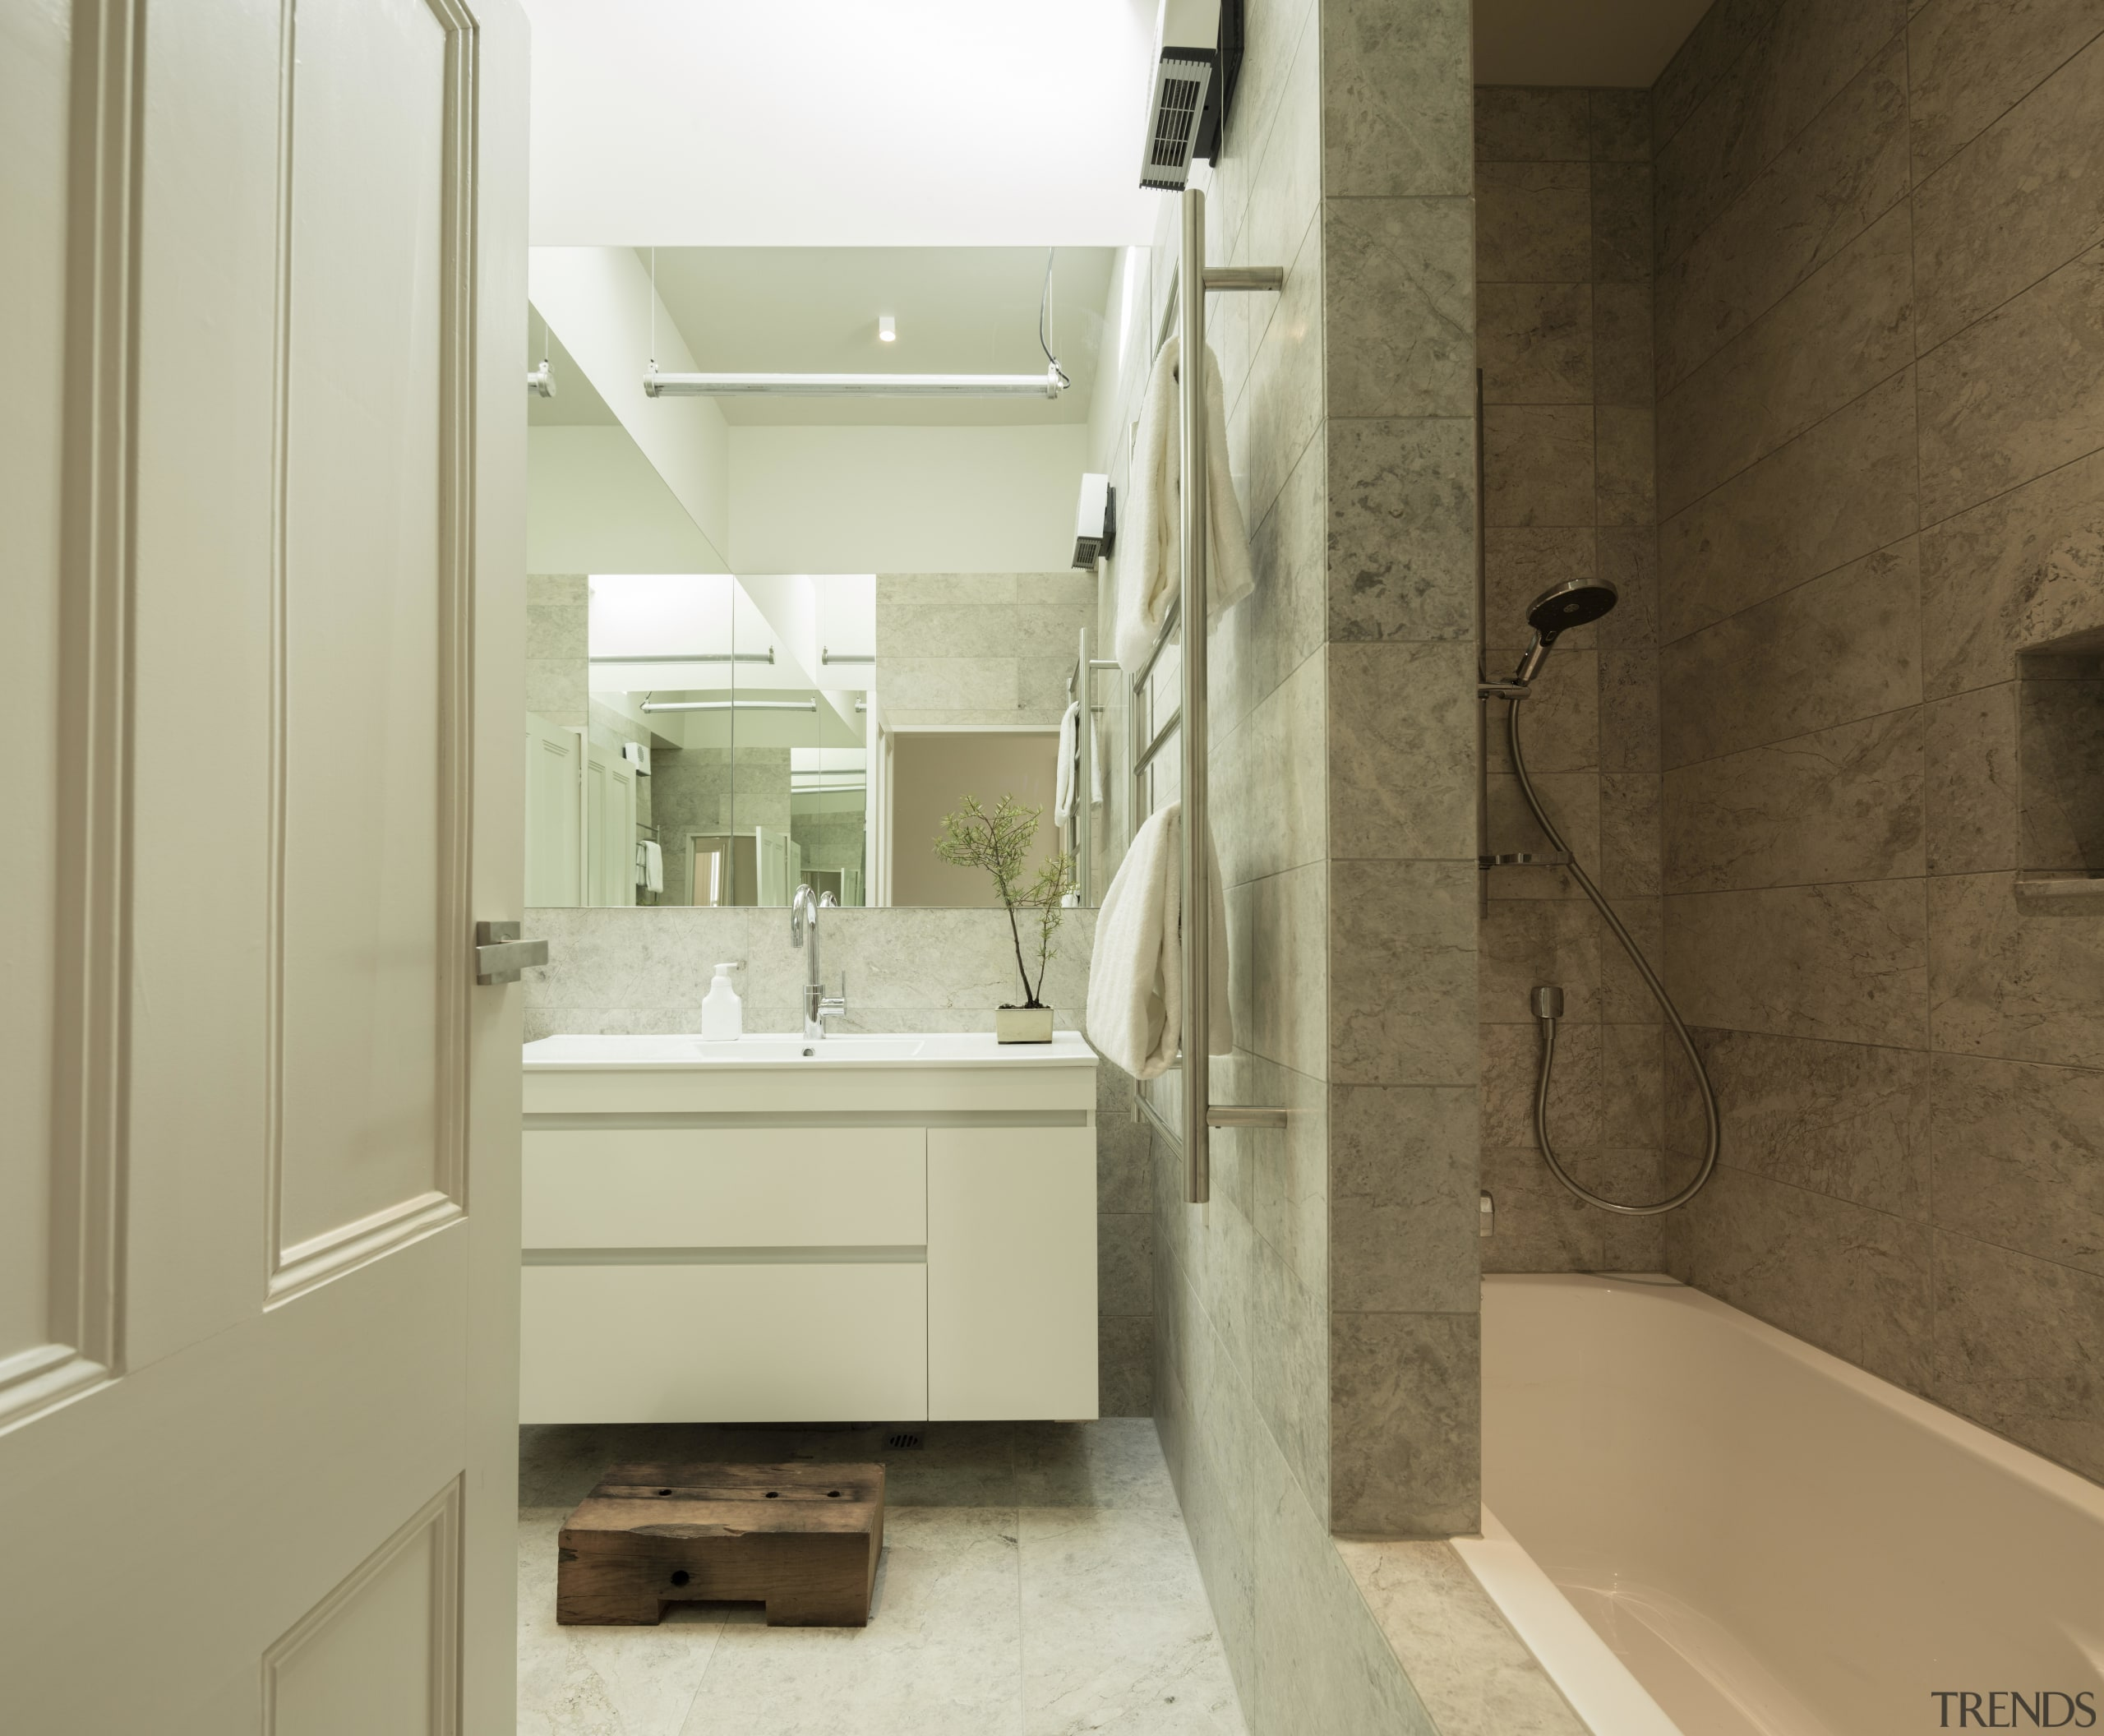 While traditional detailing was generally retained in this bathroom, bathroom accessory, bathroom cabinet, floor, home, interior design, room, sink, brown, yellow